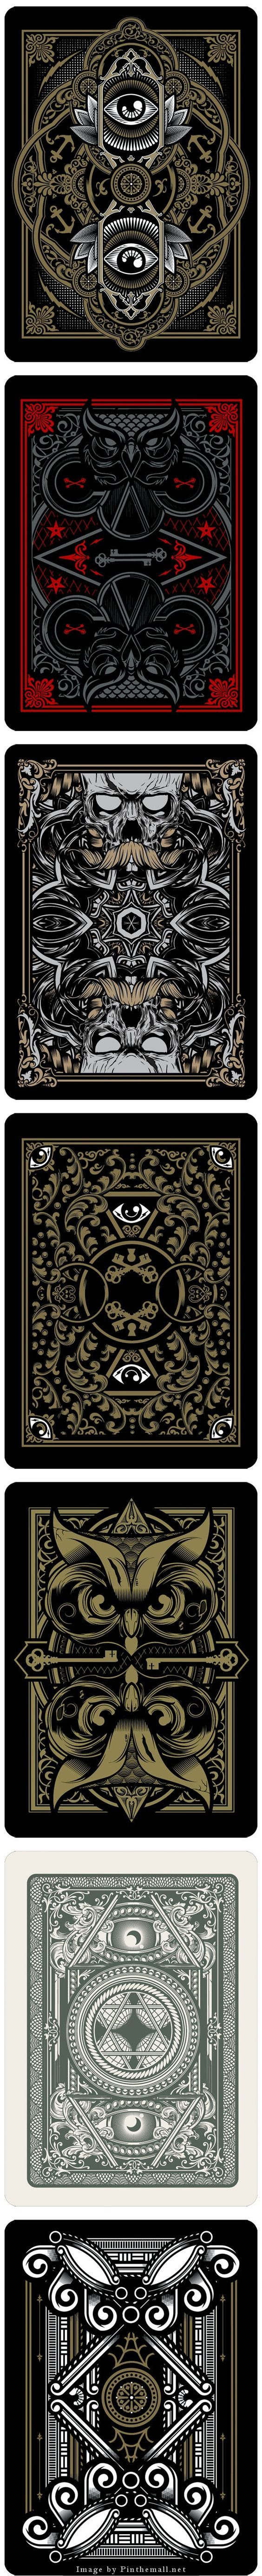 Playing Card Exploration: